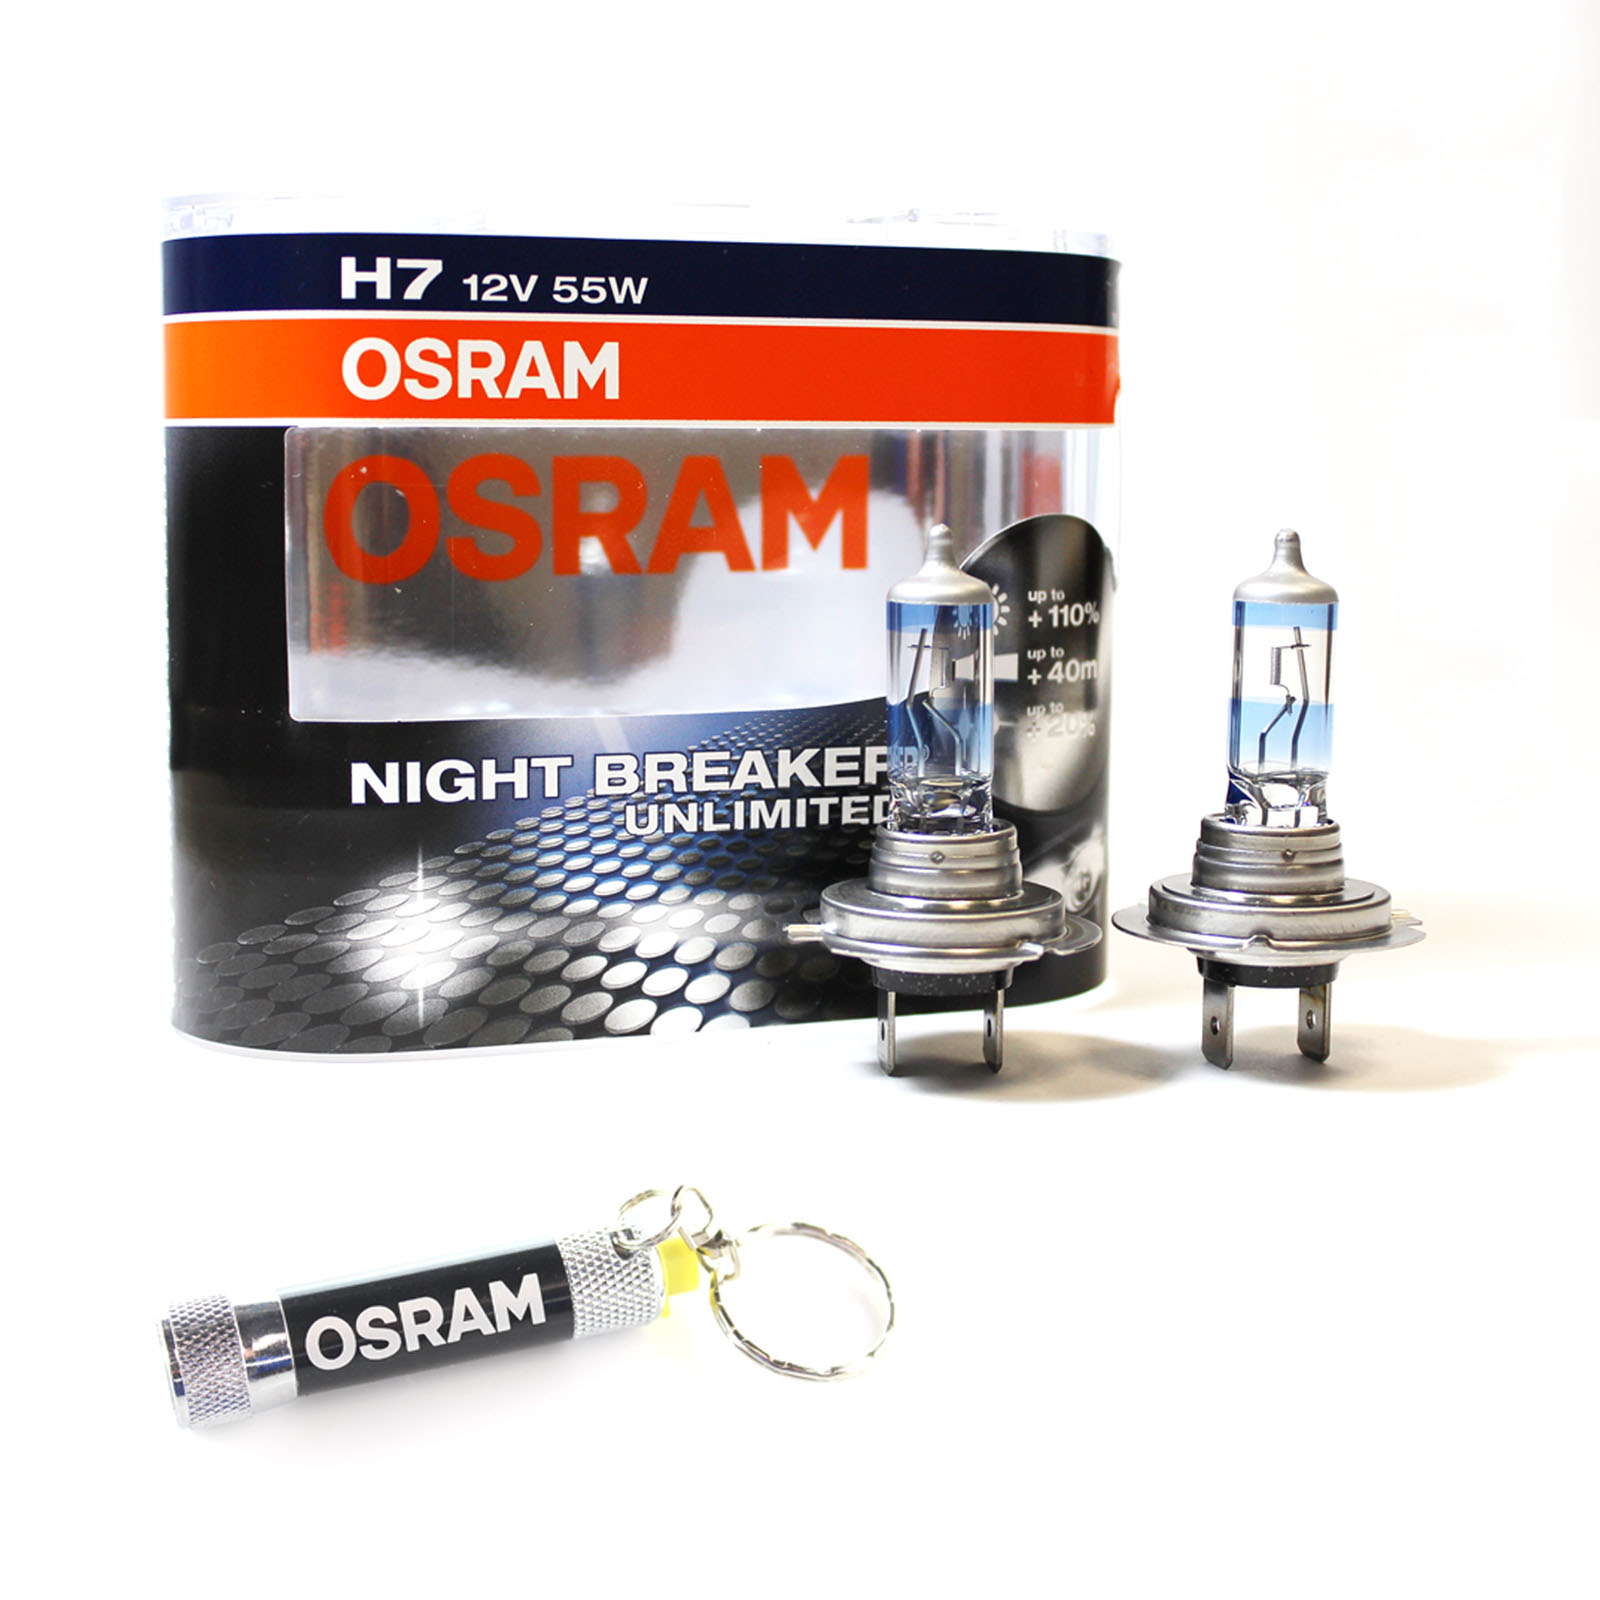 2x osram h7 night breaker unlimited xenon headlight bulbs. Black Bedroom Furniture Sets. Home Design Ideas